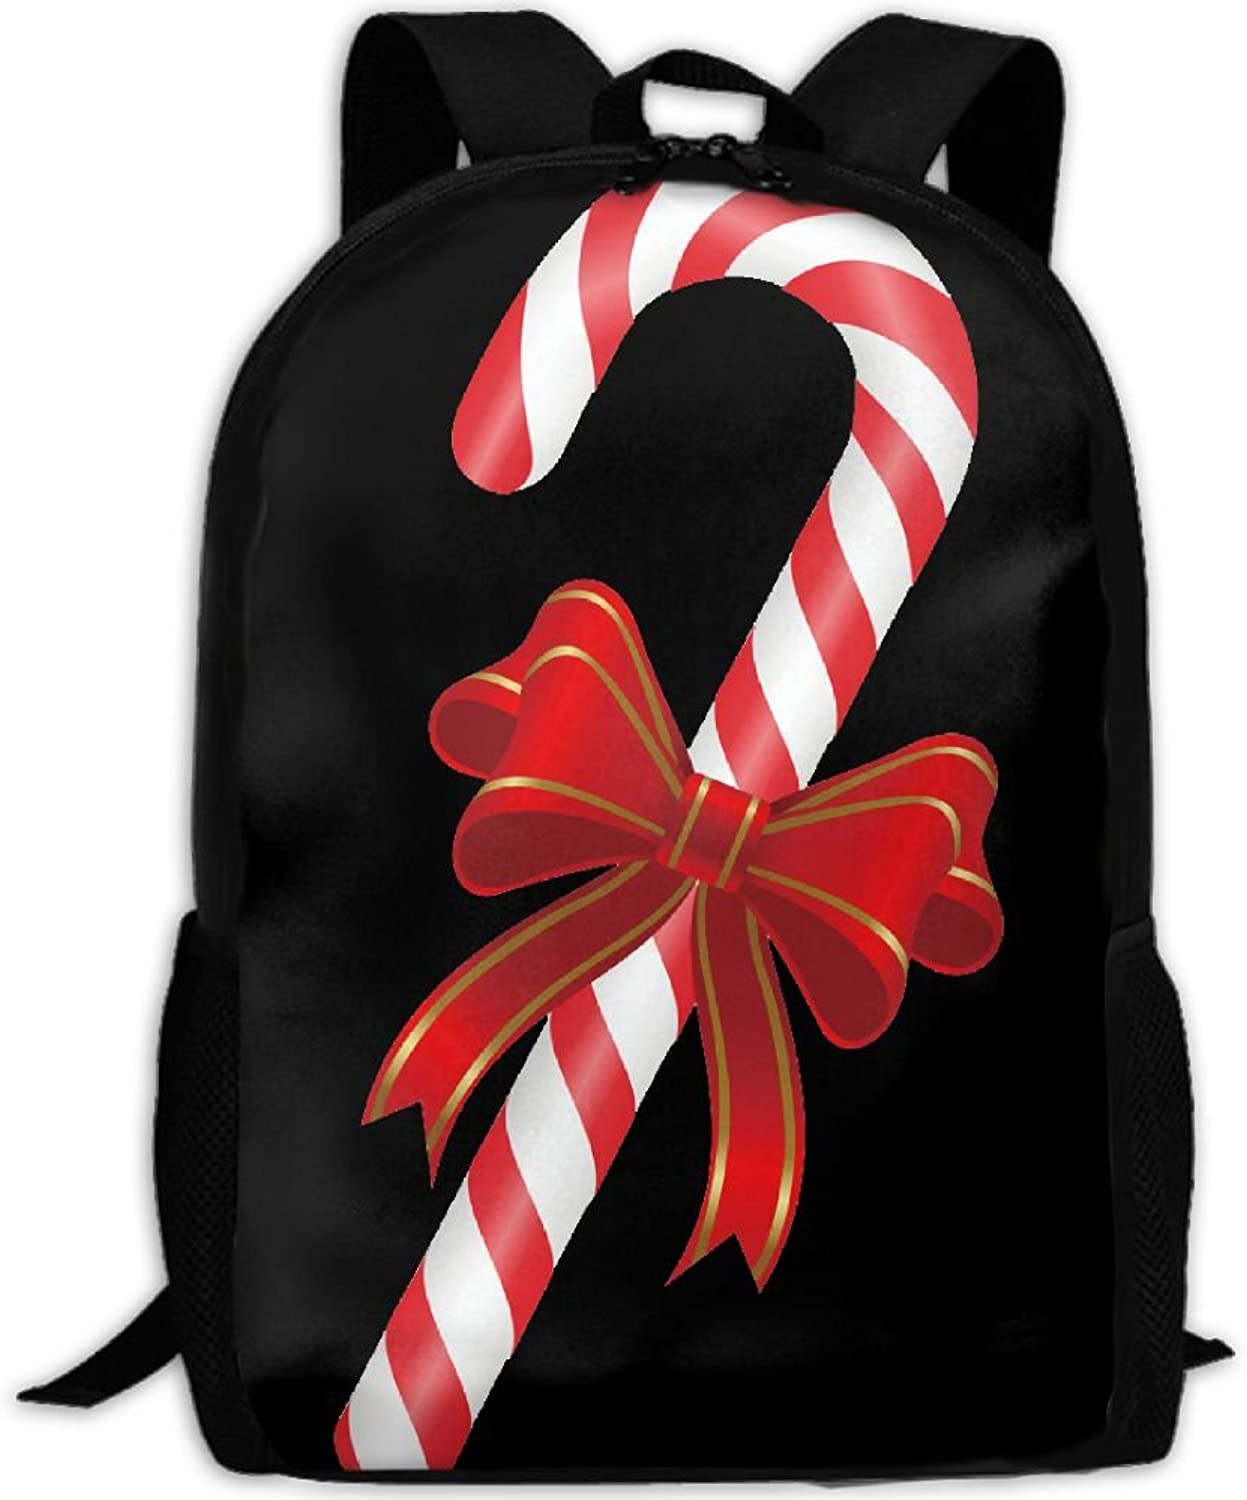 6303465a2eb6 Candy Cane Outdoor Shoulders Fabric Backpack Multipurpose Daypacks ...